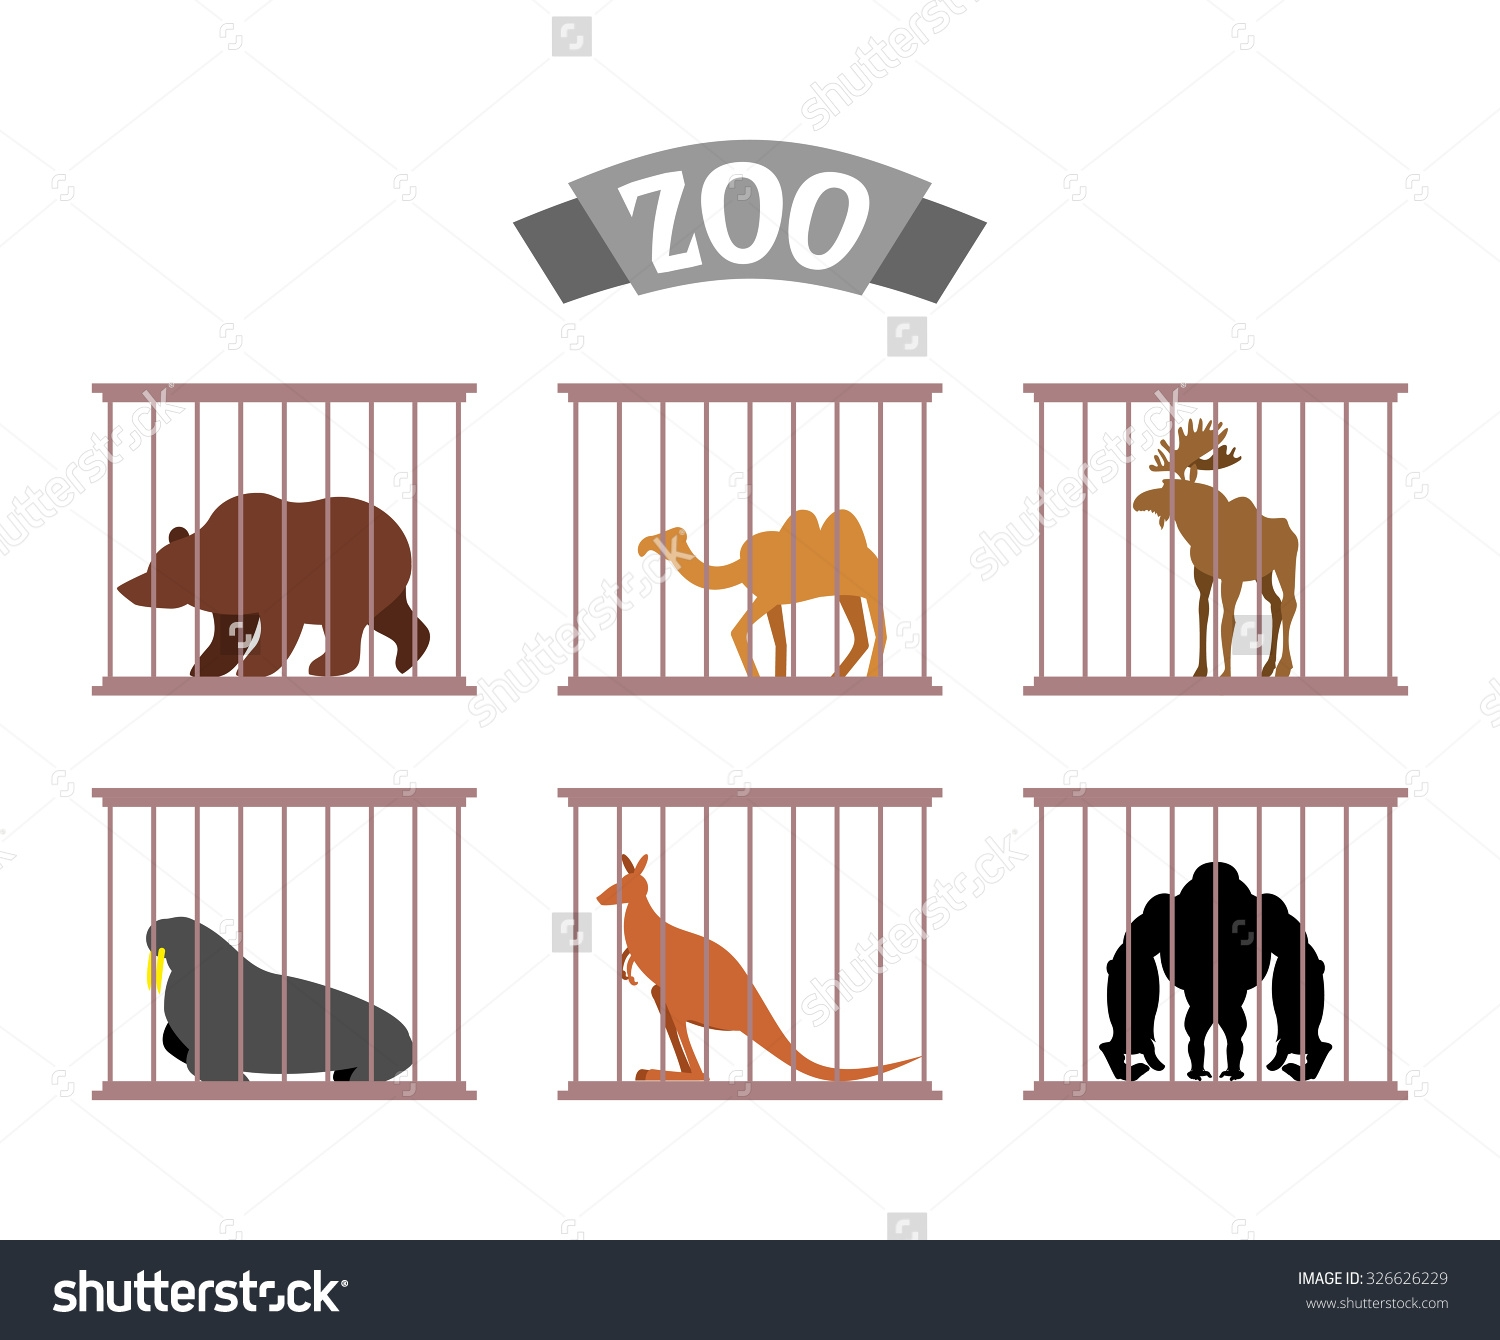 Pencil and in color. Cage clipart zoo cage